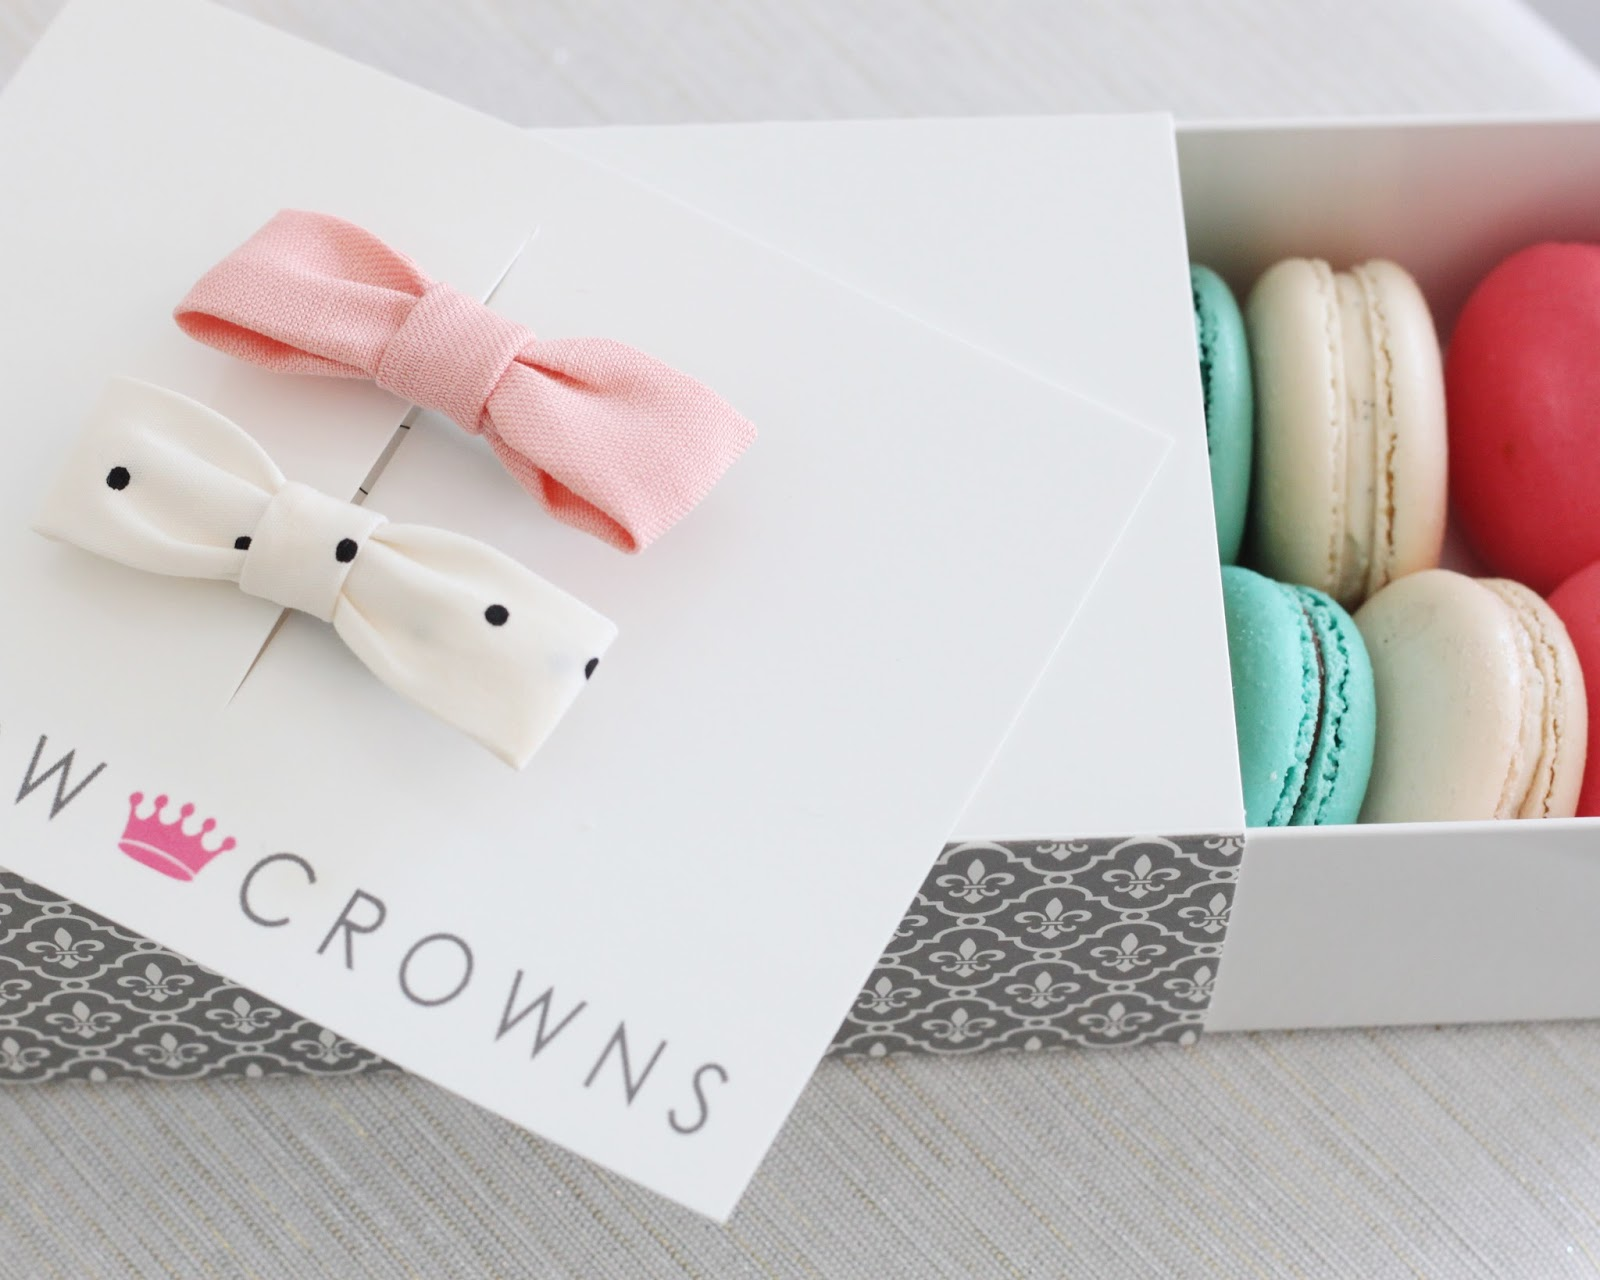 Willow & Co.: Annual Macaron by Patisse Pop Up